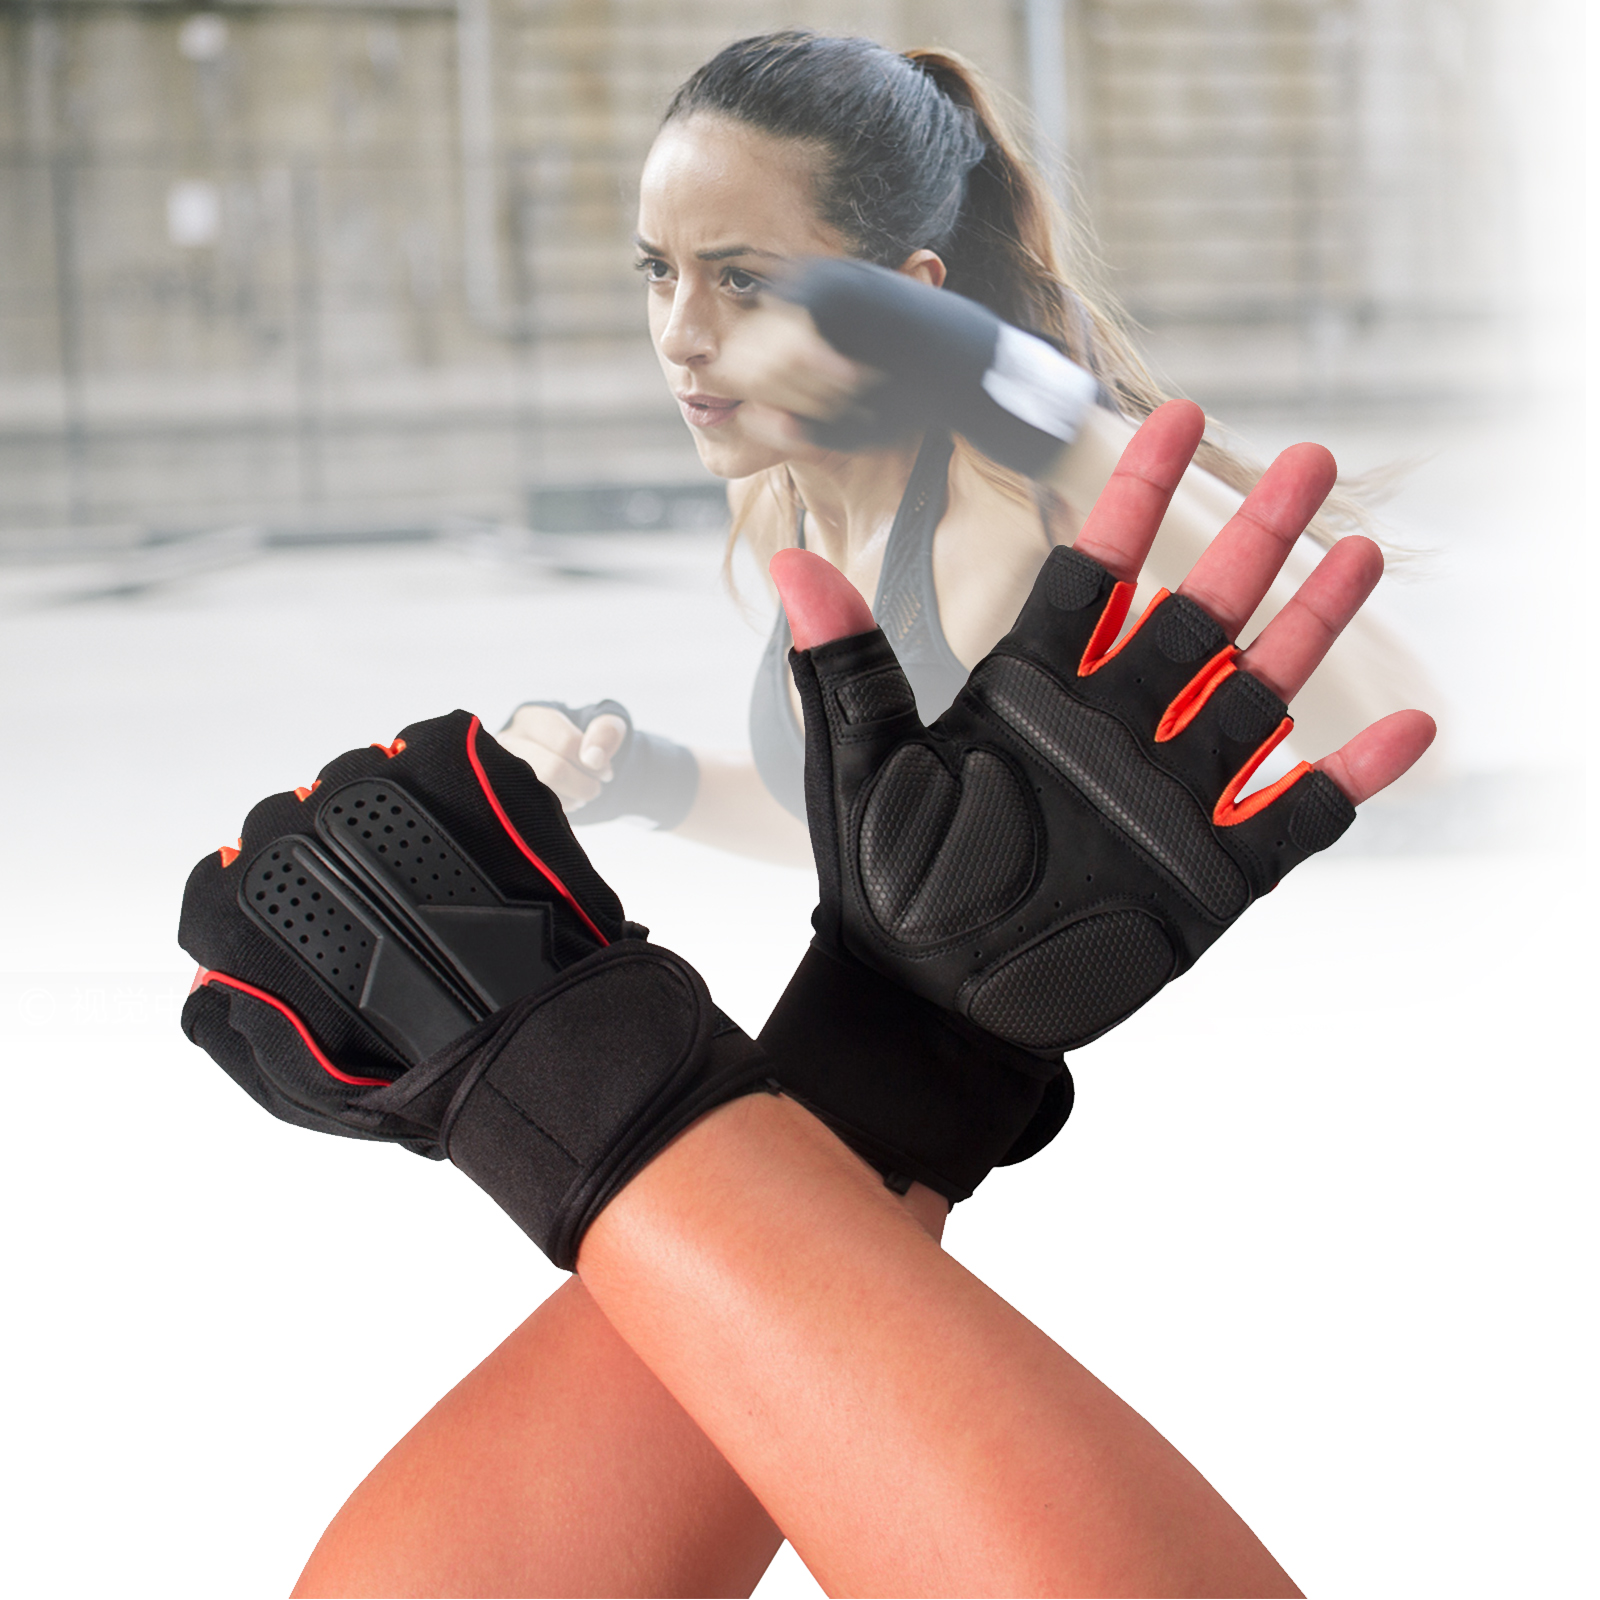 TSV Non-Wristwrap Weight Lifting Gloves with Anti-slip Silica Gel Grip & Adjustable Velcro